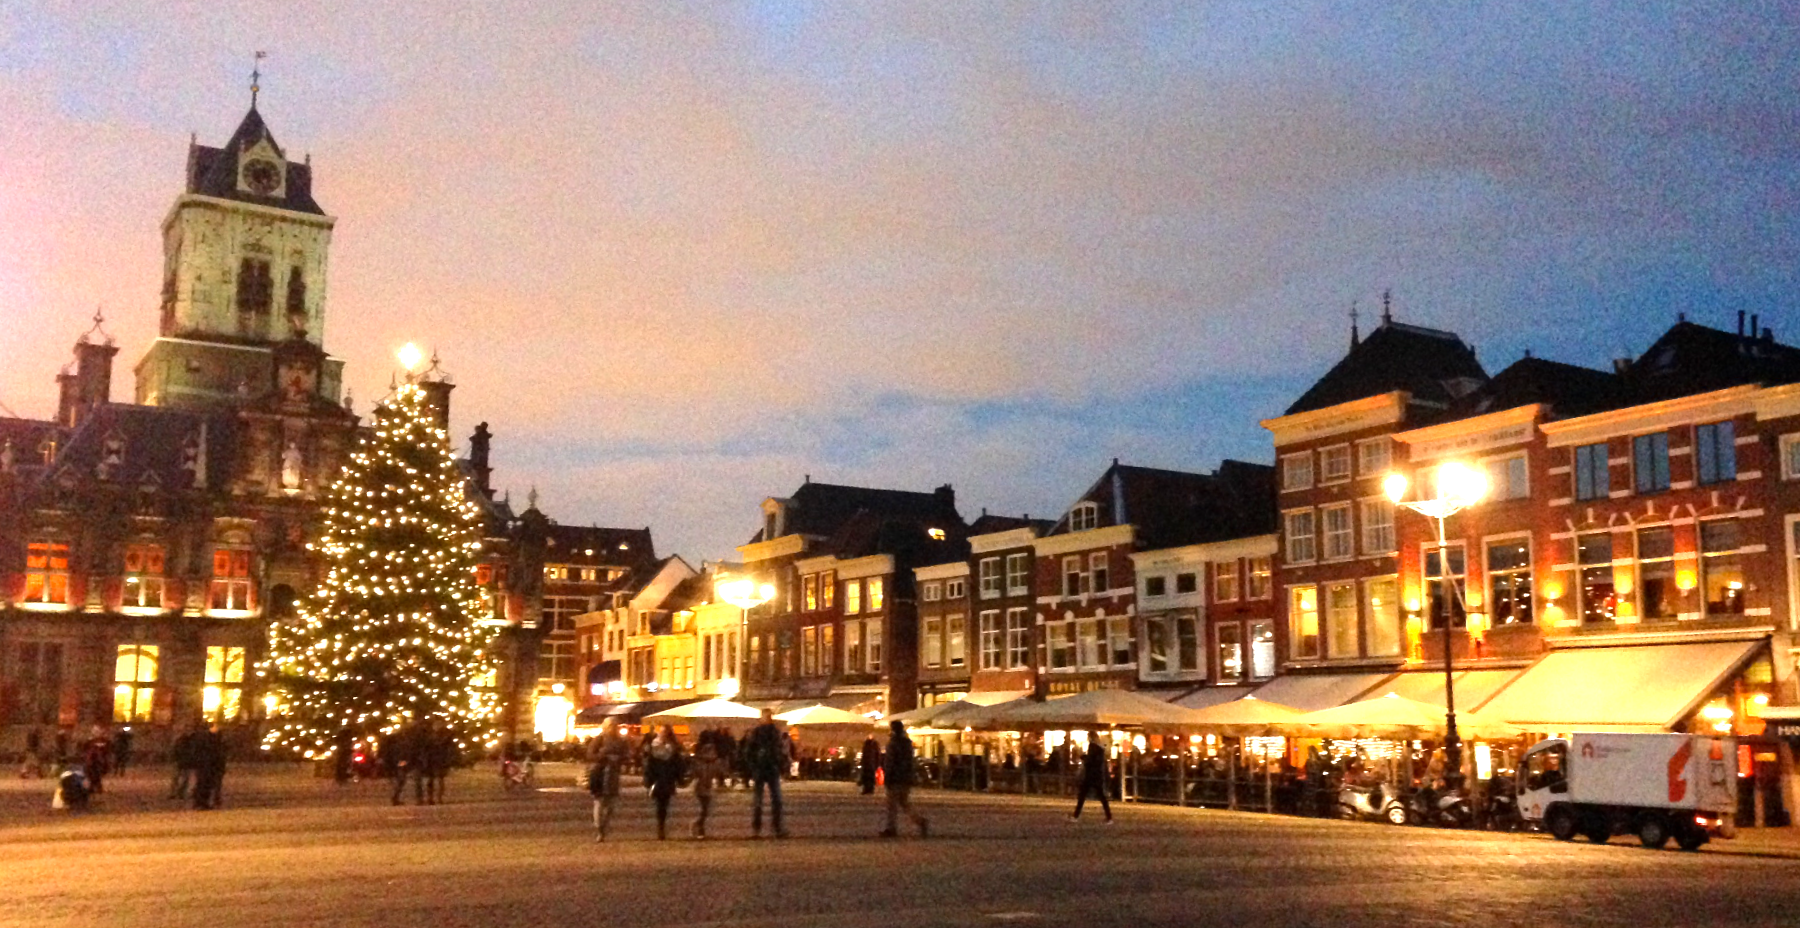 Christmas time in Delft, Netherlands